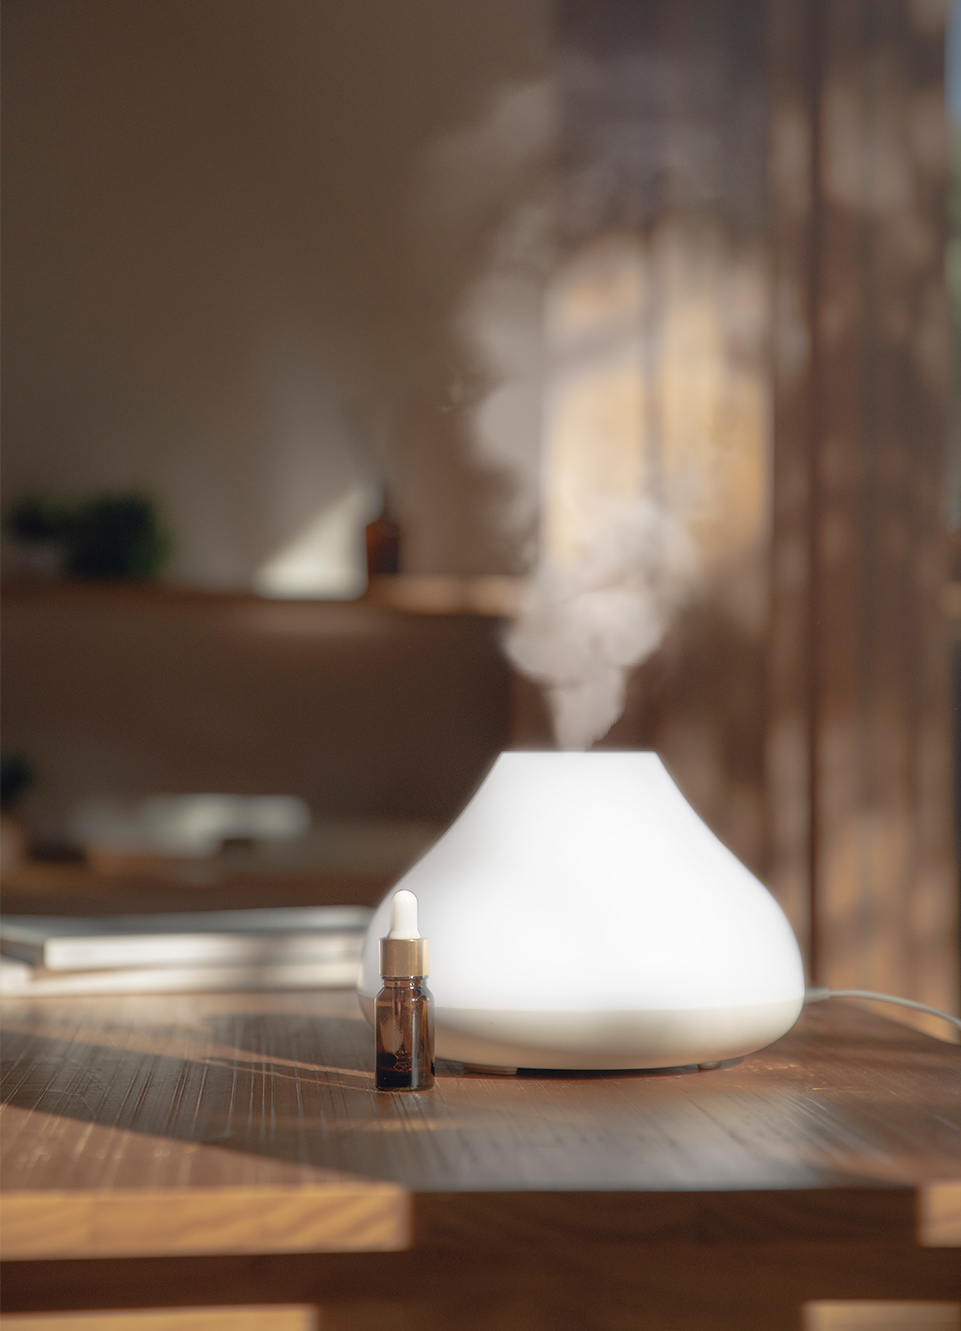 H7-HumIdifier images